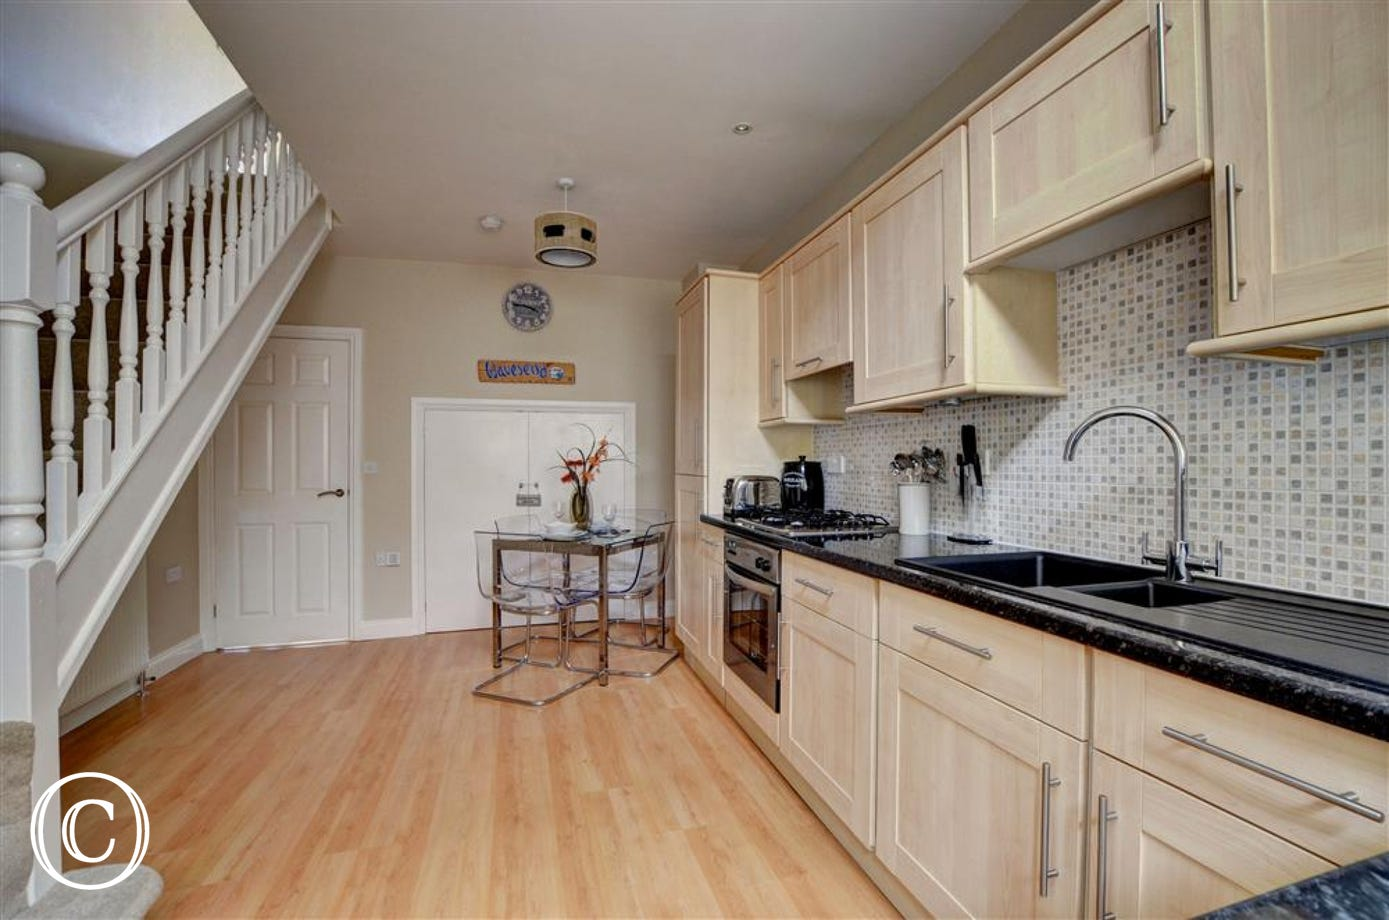 Spacious kitchen and dining area, very comfortable for two!